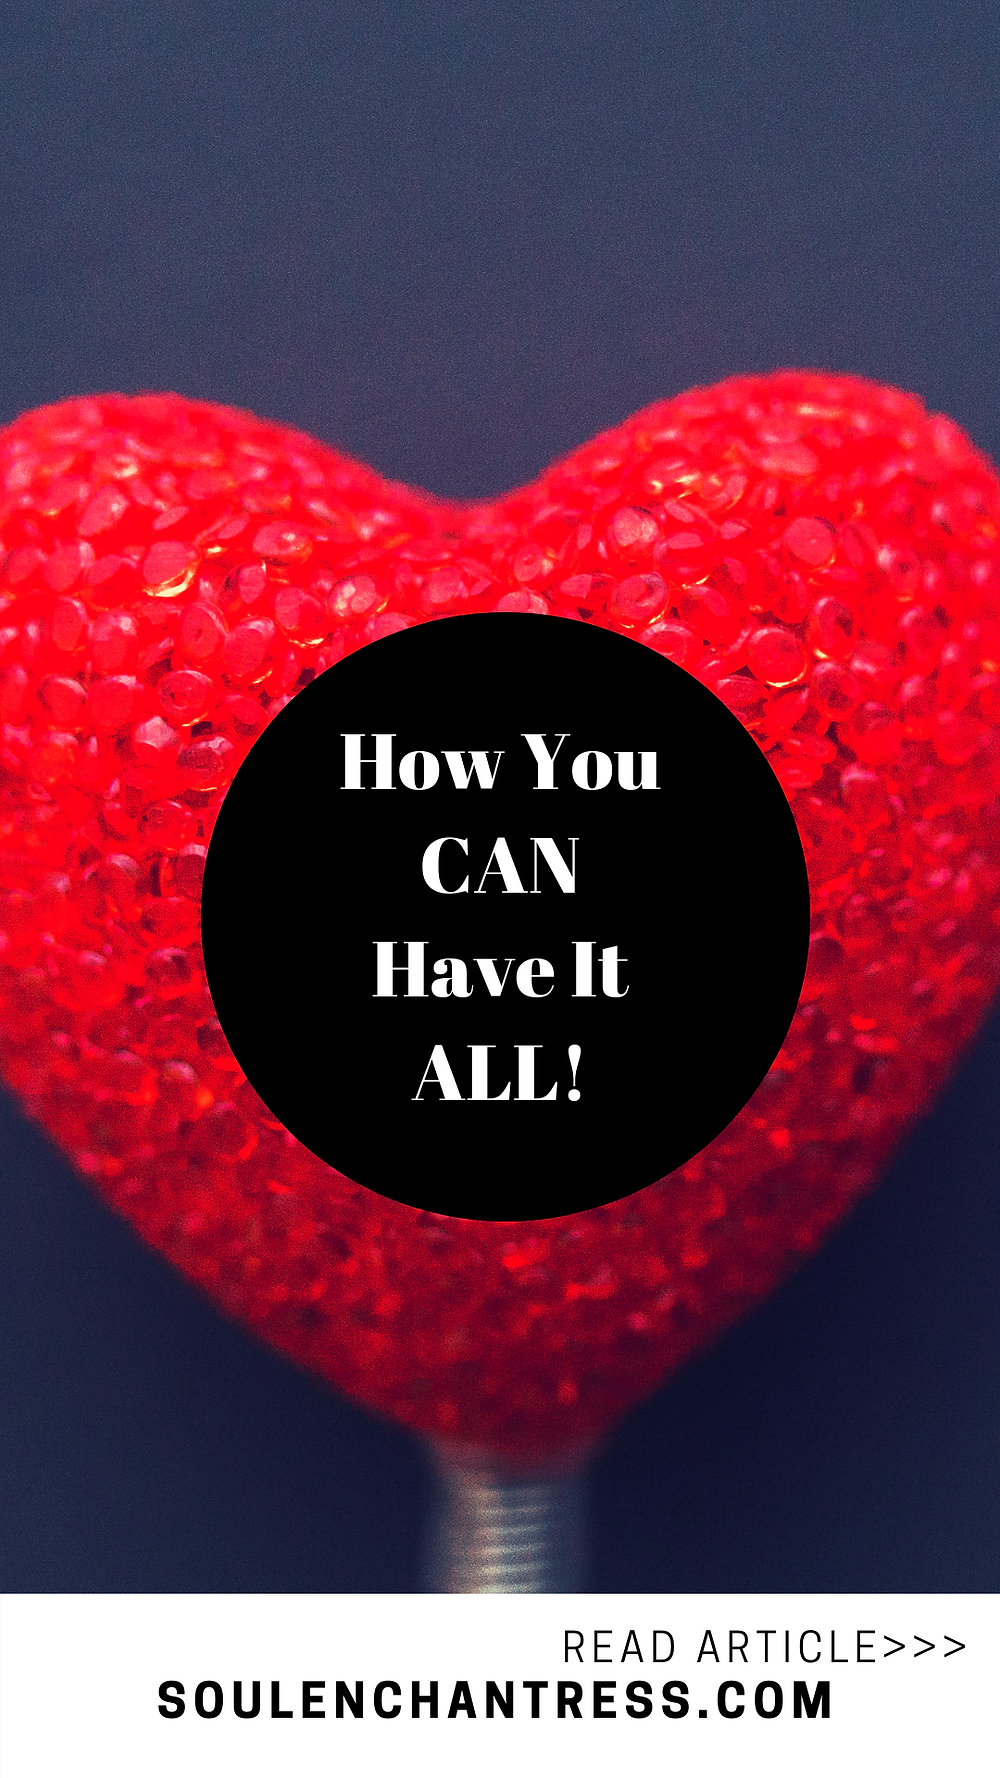 how to have it all, how you can have it all, how to attract love into your life, how to make money doing what you love, blissful living, soul enchantress